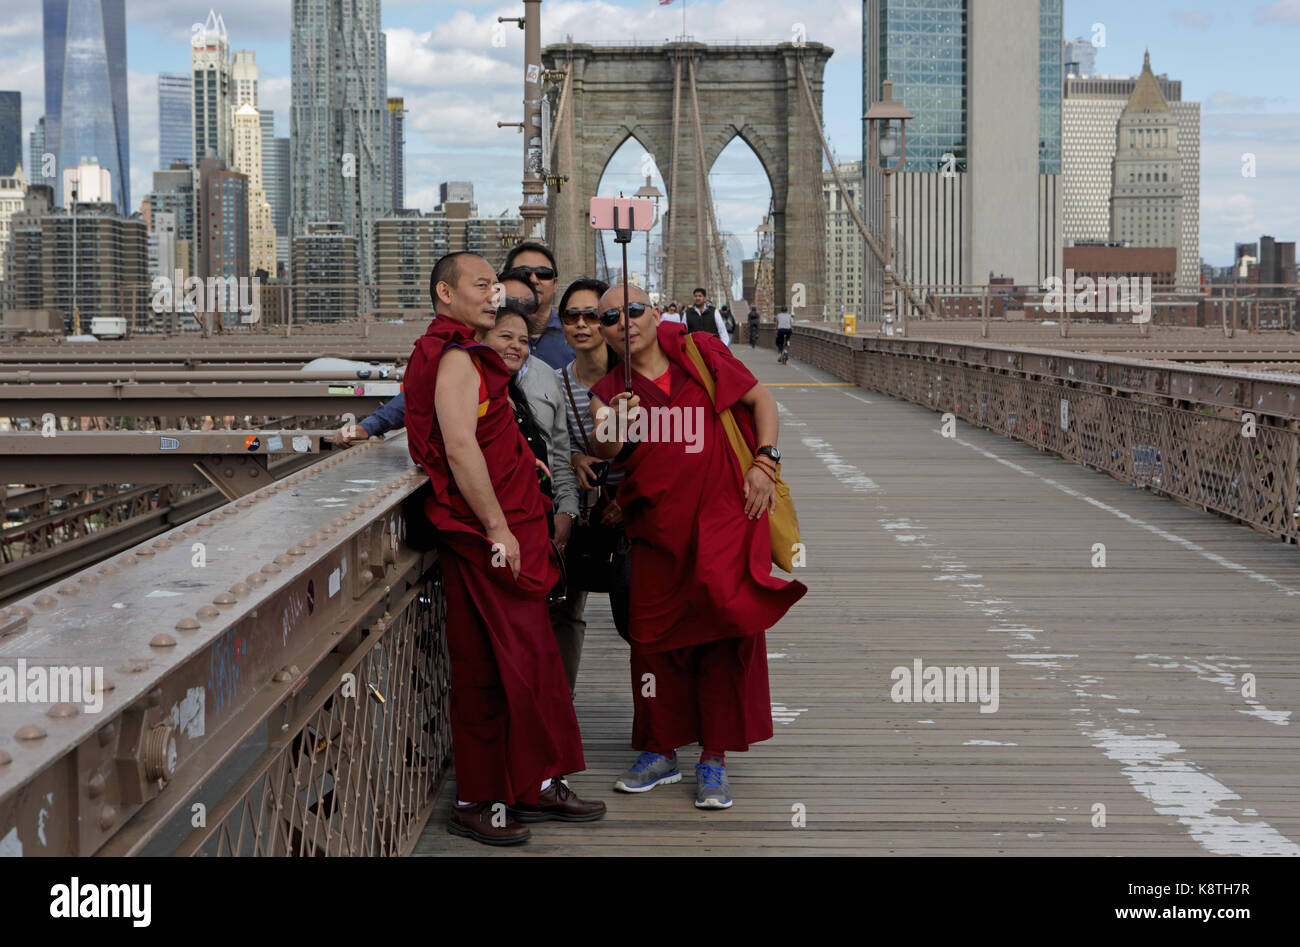 New York, NY, USA - May 3, 2017: Group of Asian people and Buddhist monks in traditional robes take a selfy photo - Stock Image